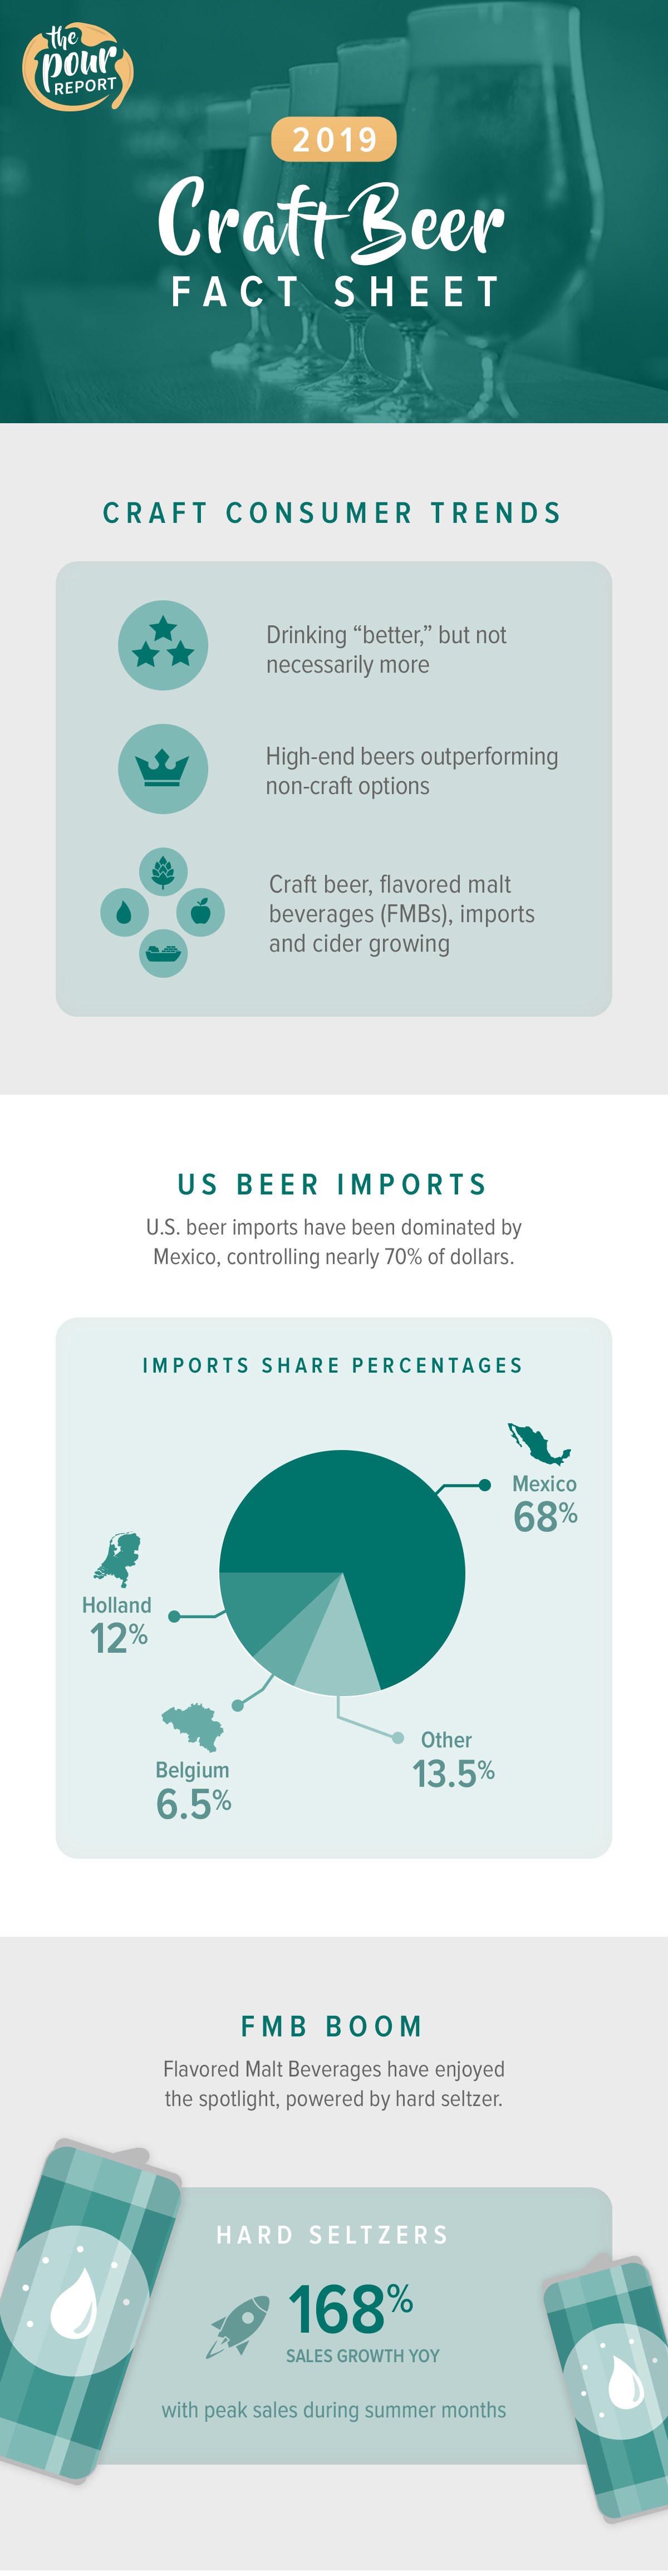 2019 craft beer fact sheet infographic